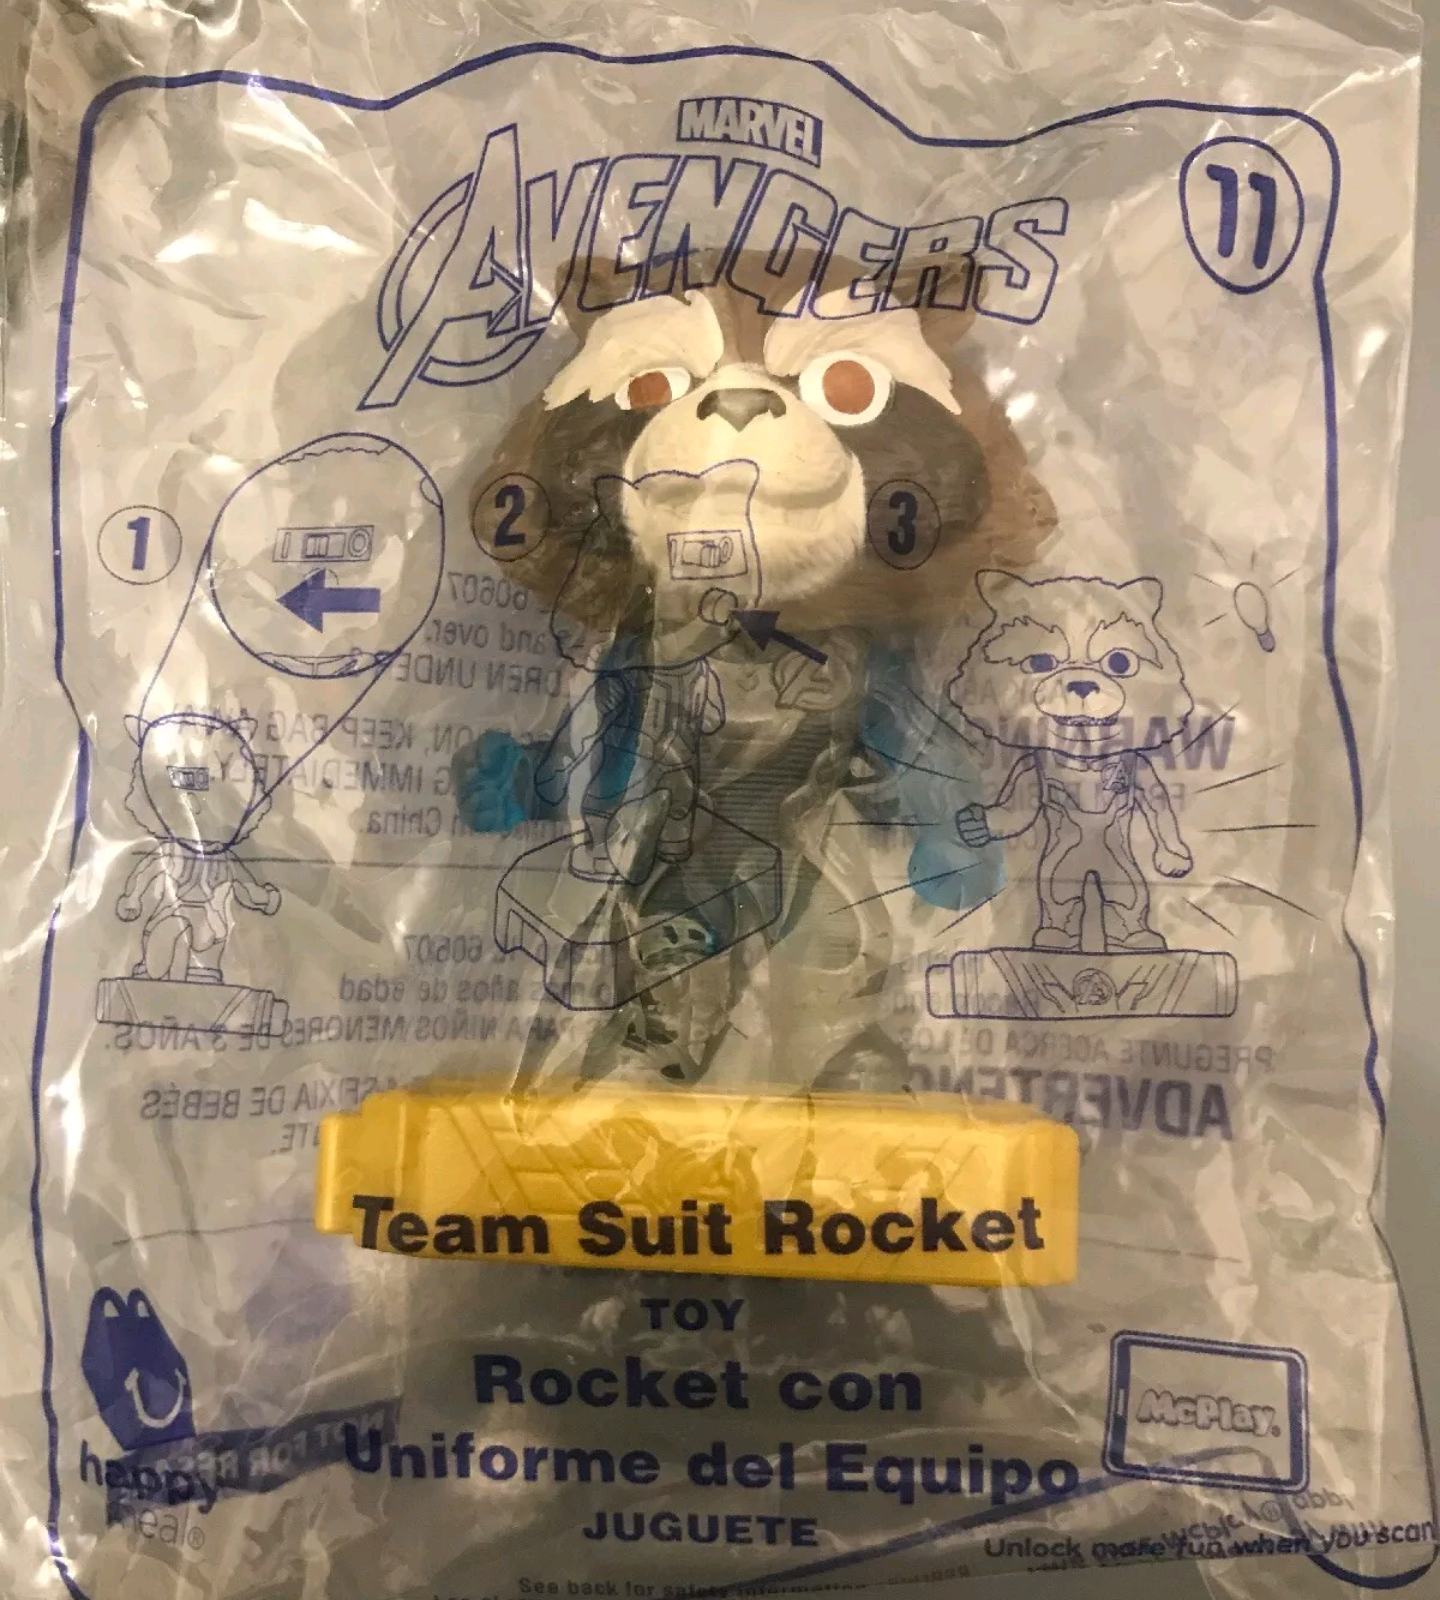 McDonalds 2019 Marvel Avengers Happy Meal Toy - Brand New in Sealed Package #11 Team Suit Rocket